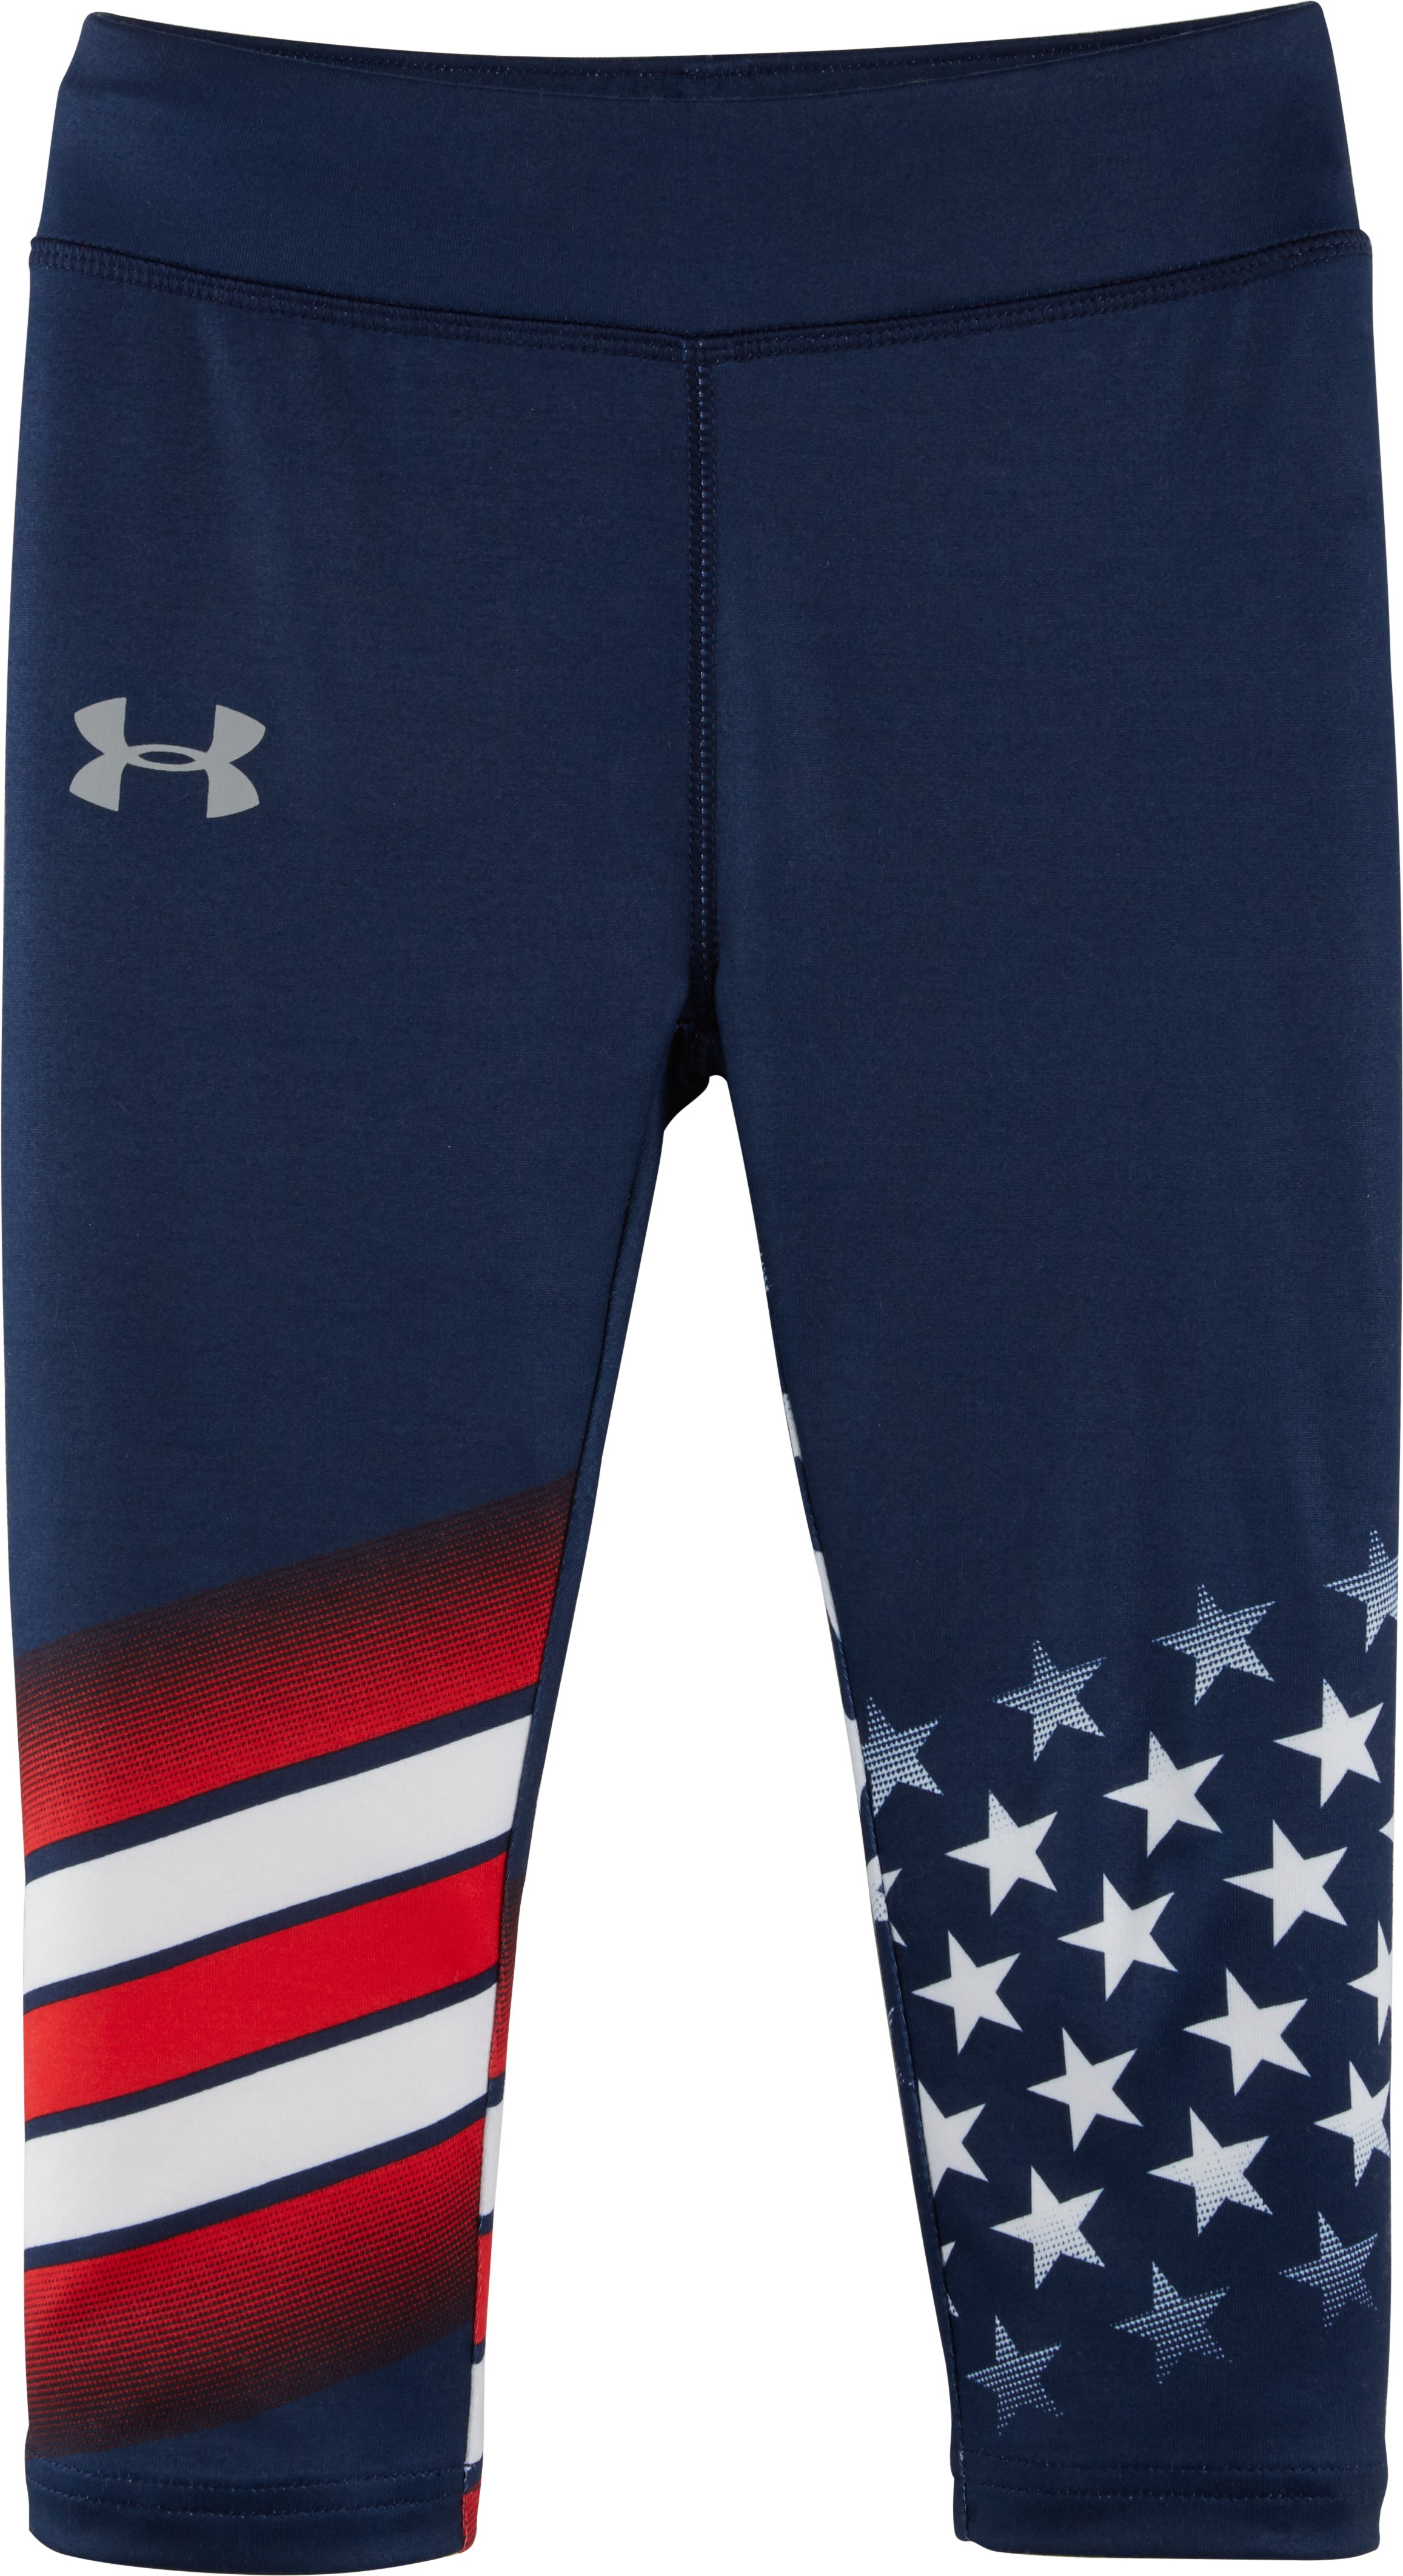 Girls' Pre-School UA USA Capris, NAVY SEAL